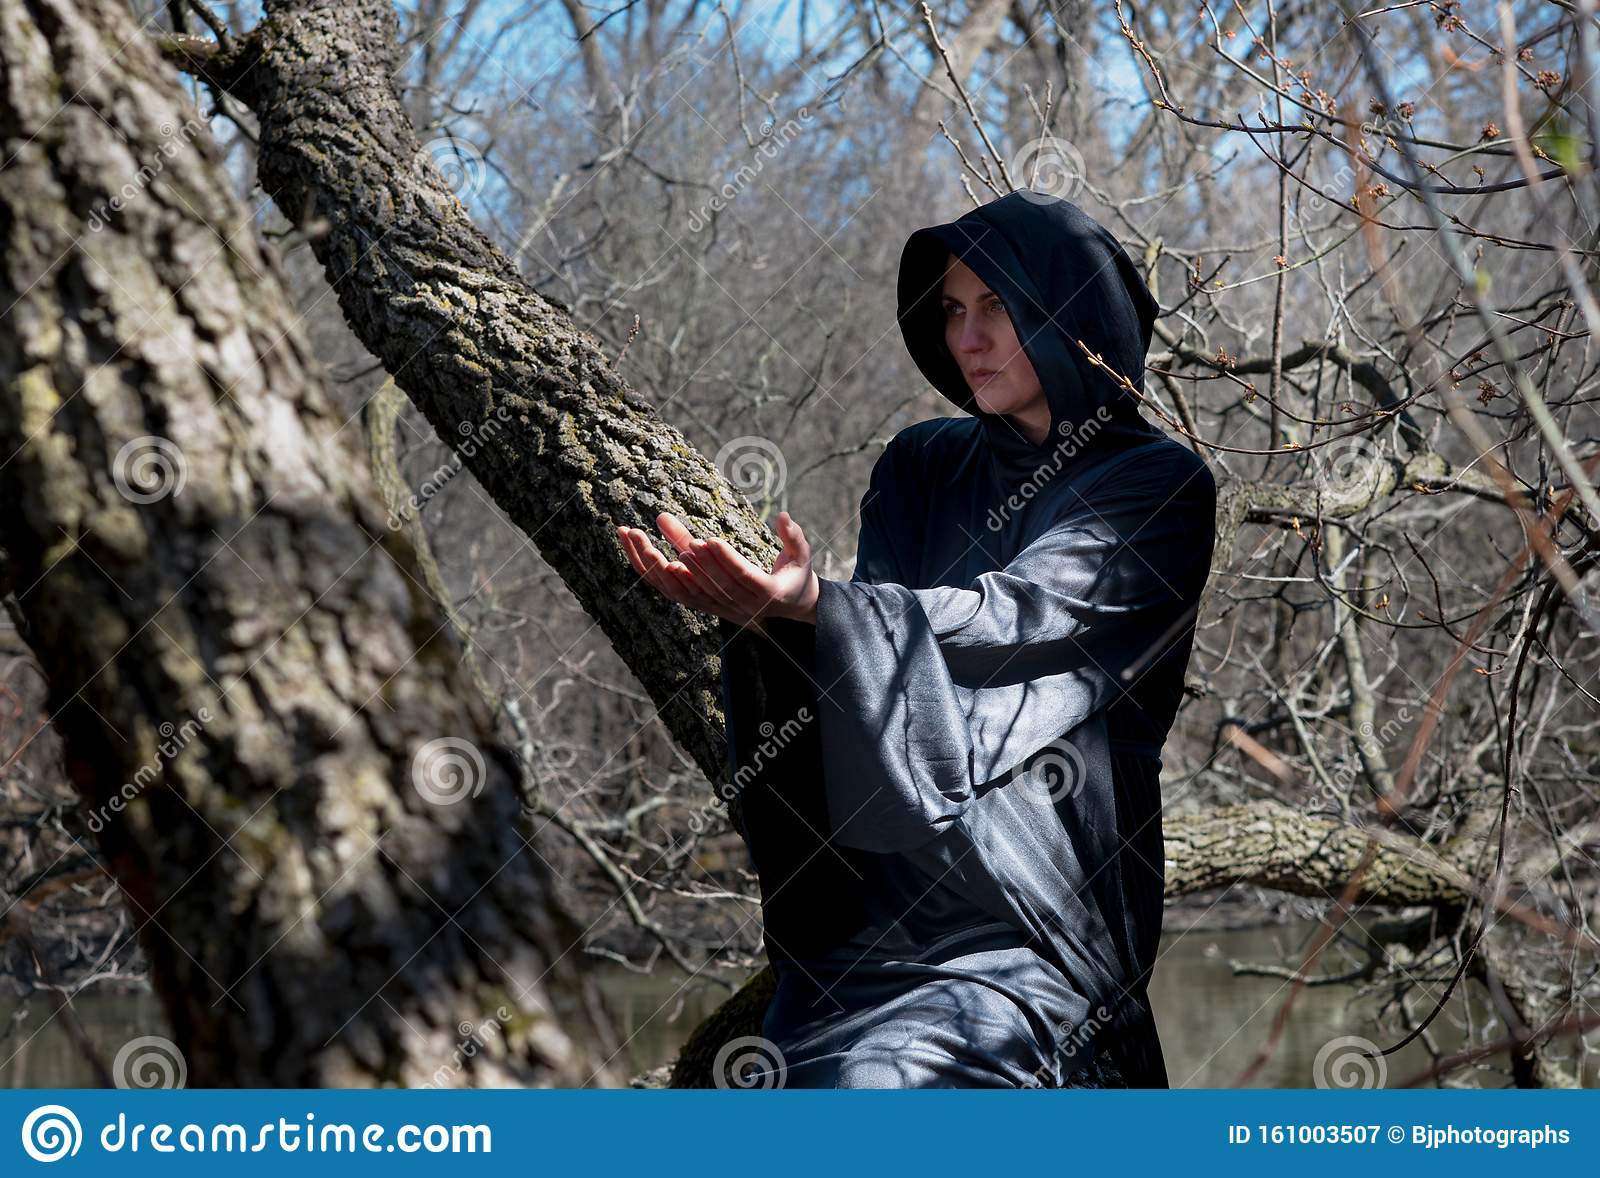 Woman With Dark Long Hair In Black Robes Hanging On Tree Branches In The Middle Of A Swamp Halloween And Gothic Concept Stock Image Image Of Divination Fantasy 161003507